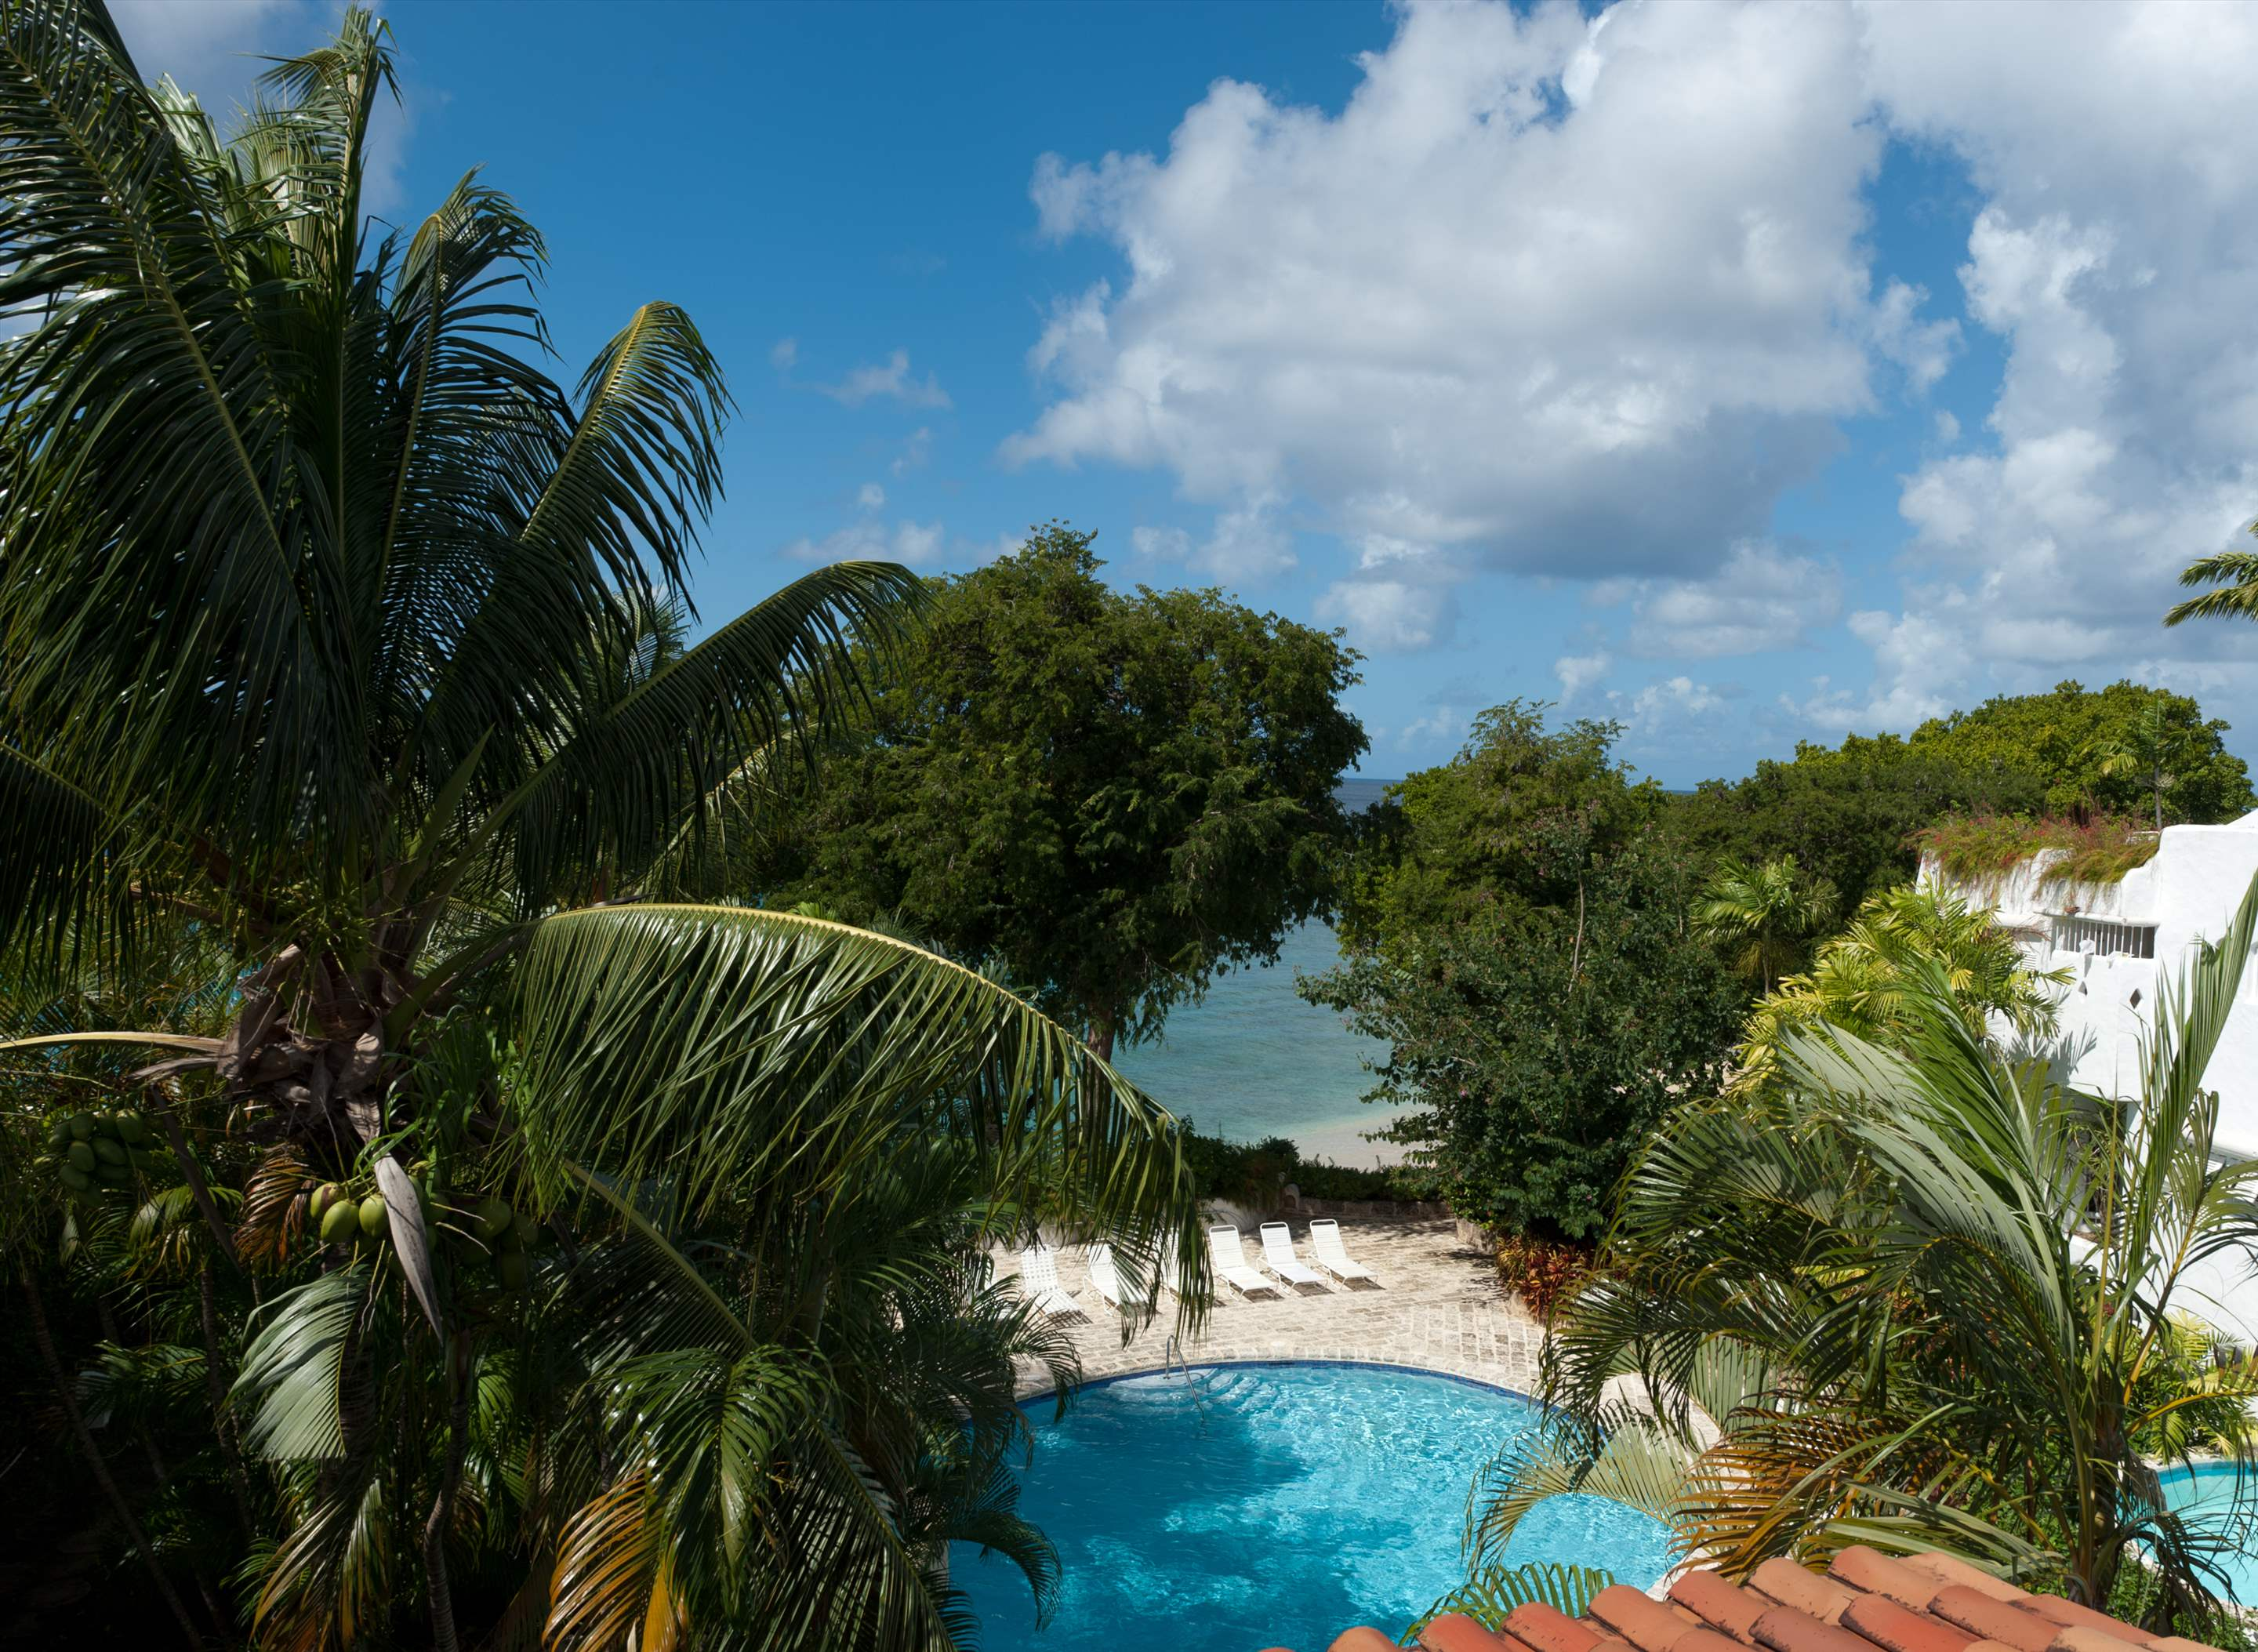 Merlin Bay Gingerbread, 3 bedroom villa in St. James & West Coast, Barbados Photo #10